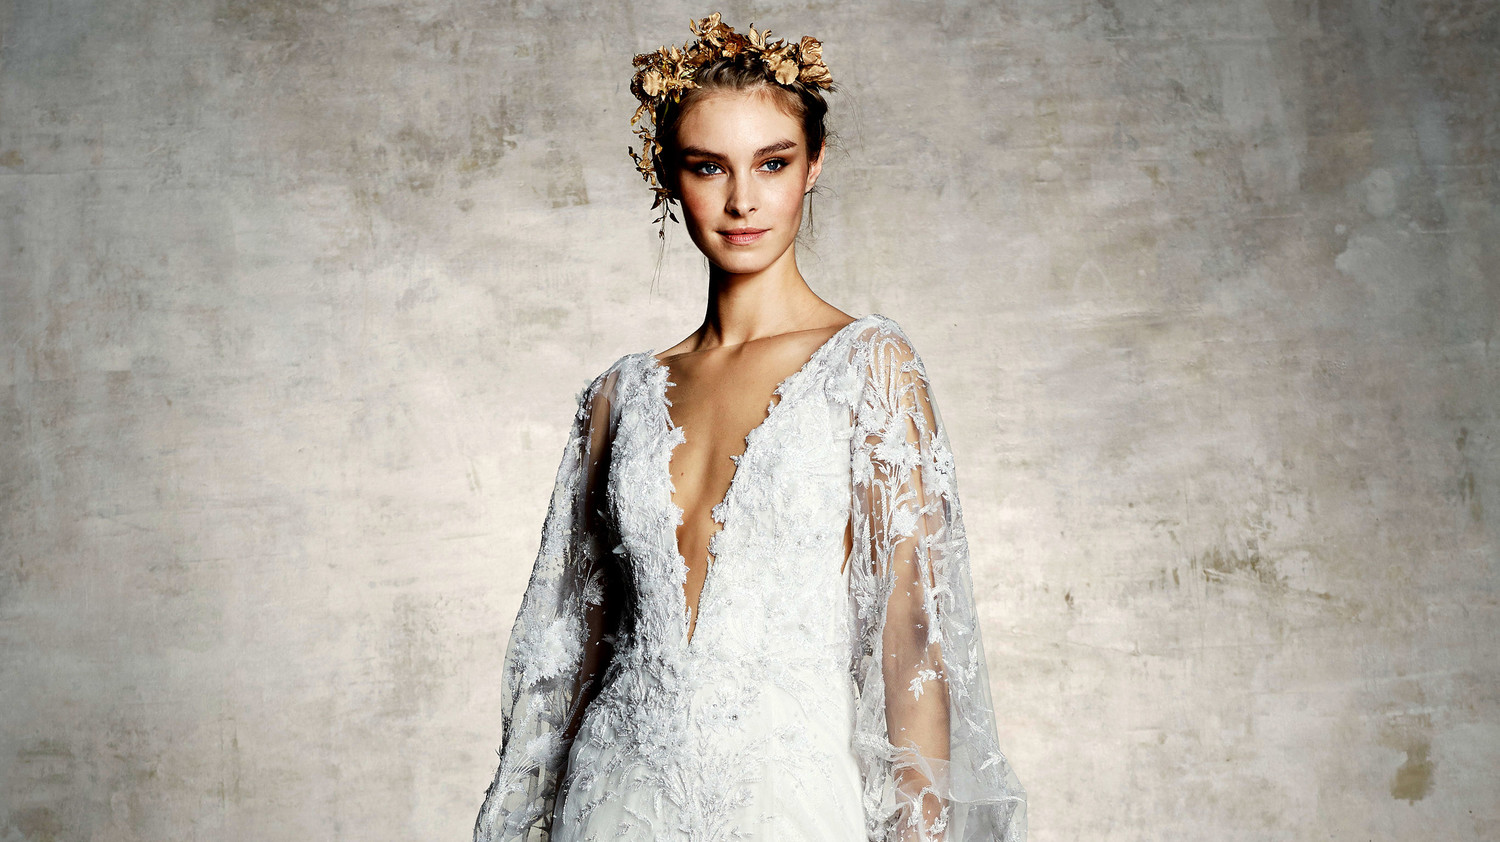 Marchesa Fall 2019 Bridal Collection Marchesa Fall 2019 Bridal Collection new pics